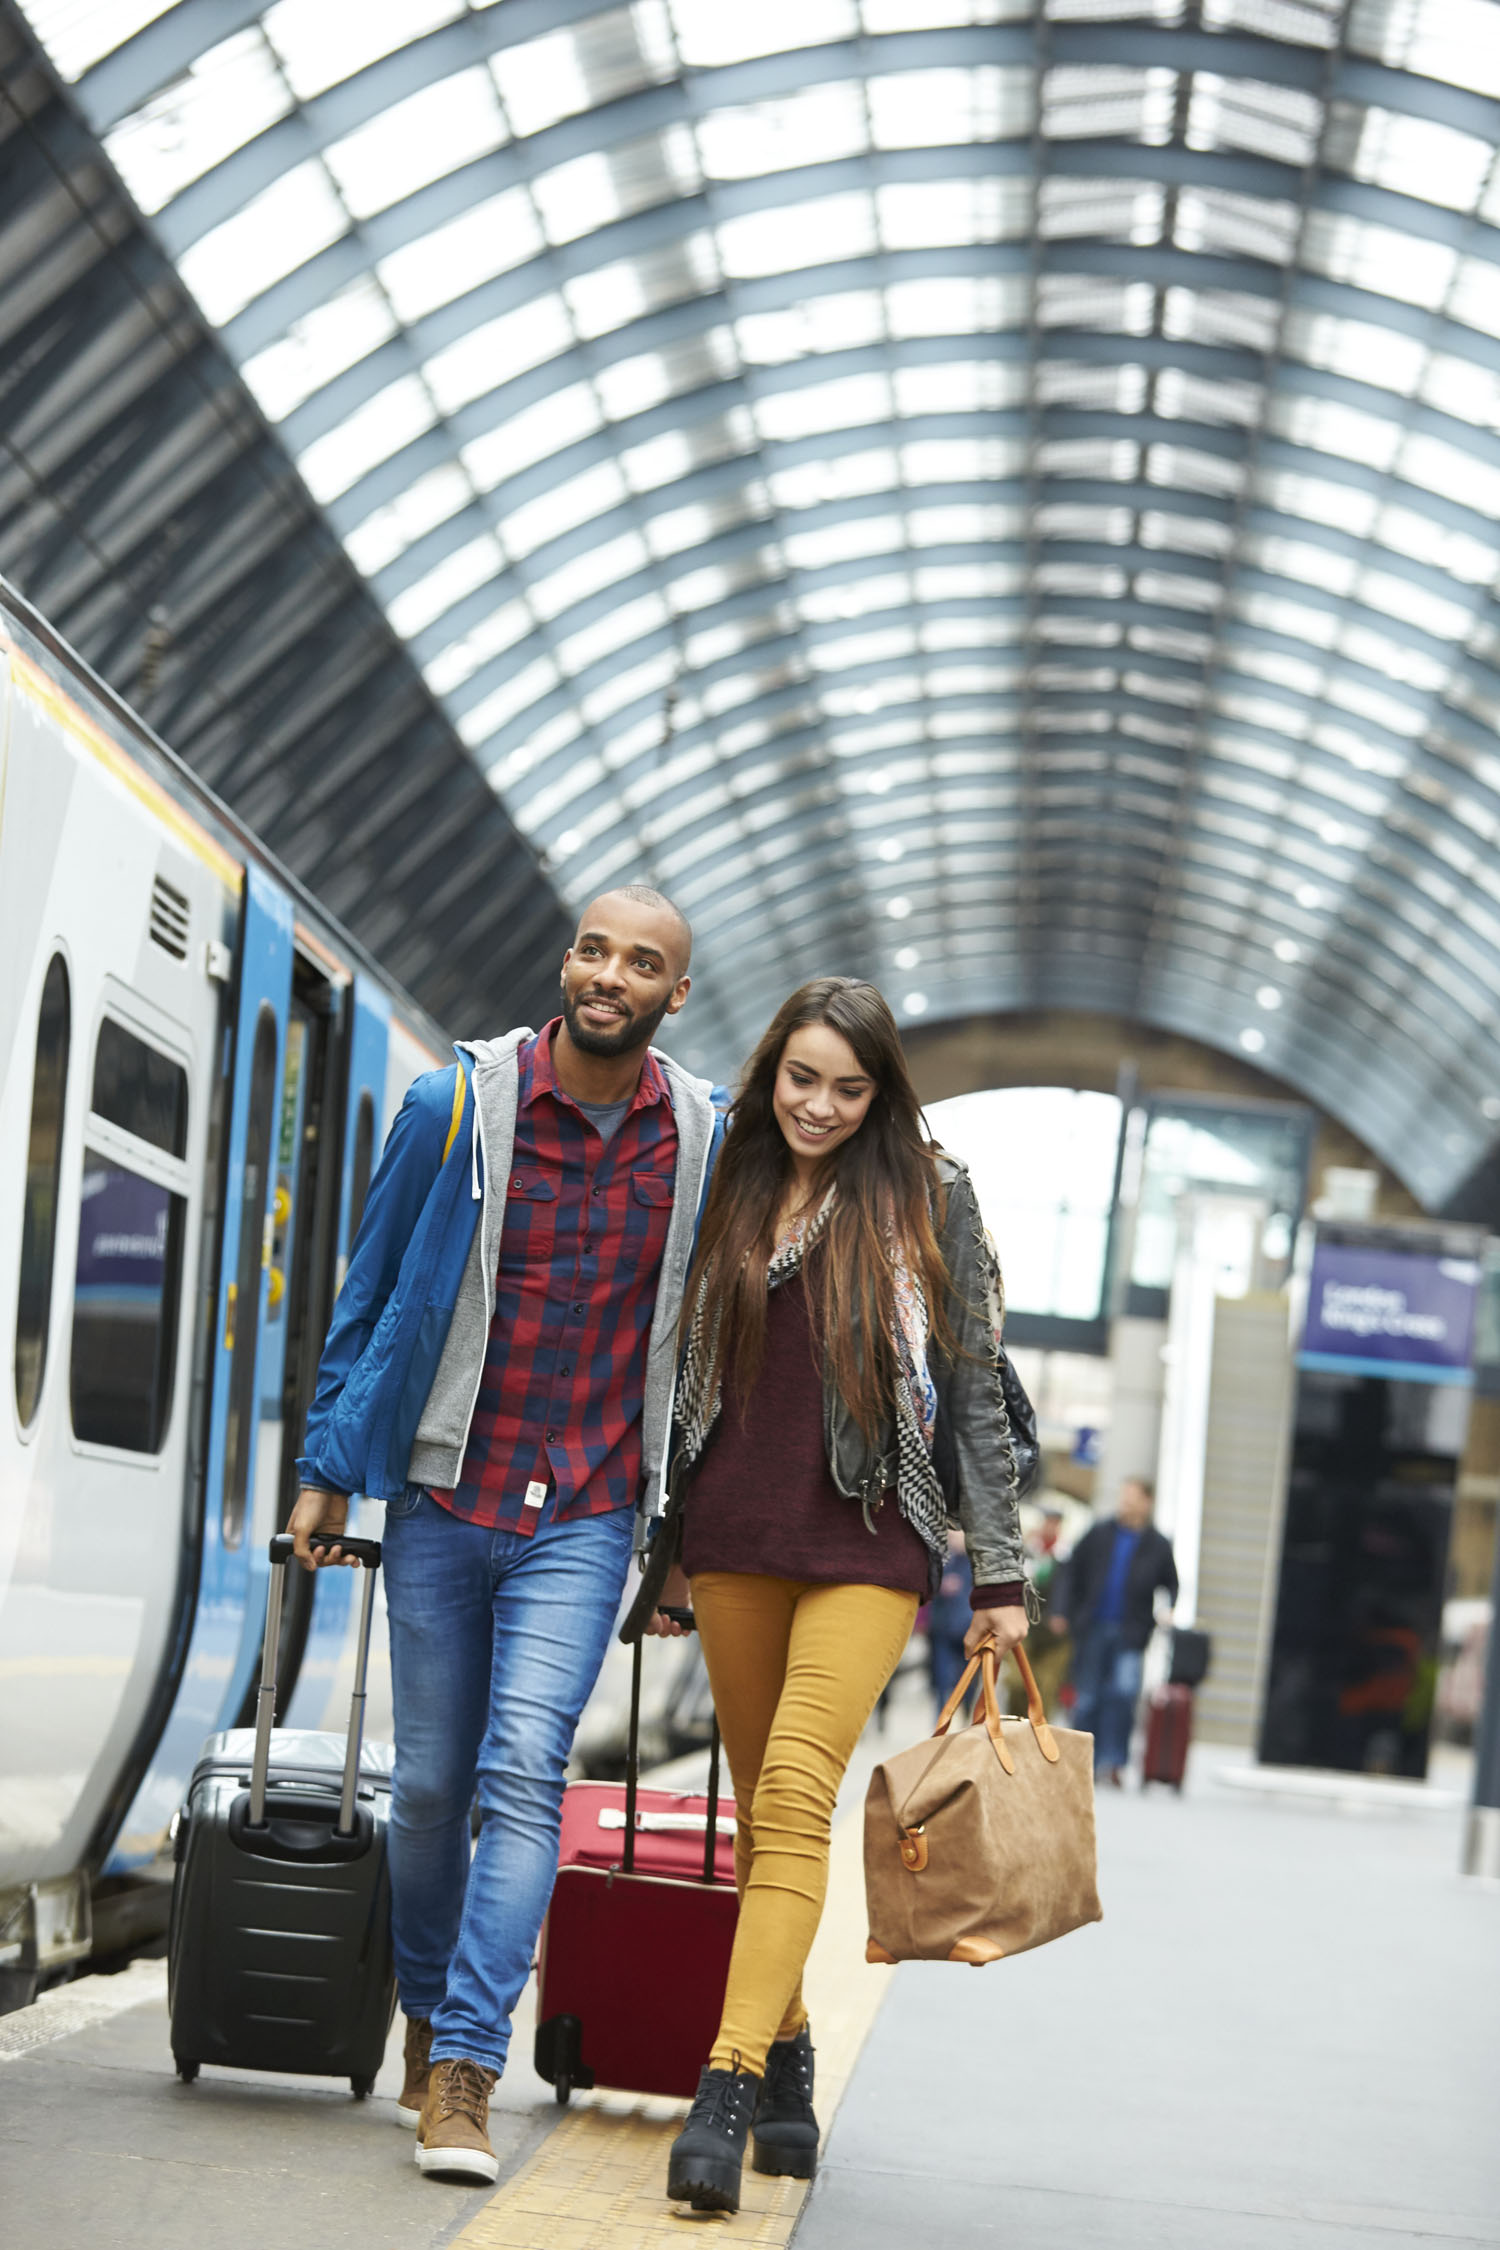 HPTCOR15040_LONDON_STATION_PLATFORM_MILLENNIALS_0062_r2.jpg